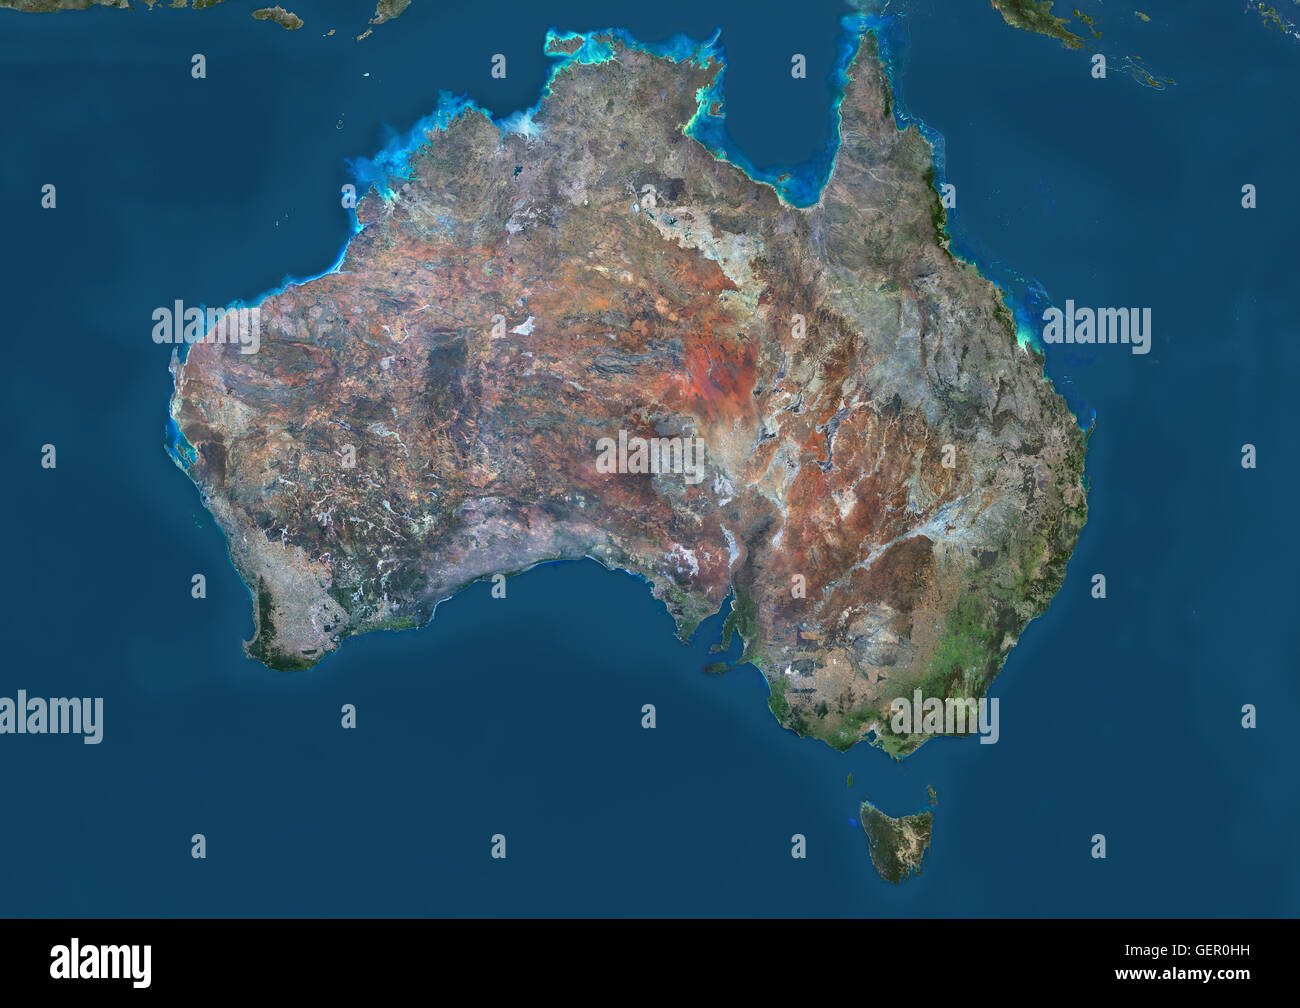 satellite view of australia this image was compiled from data acquired by landsat 8 satellite in 2014